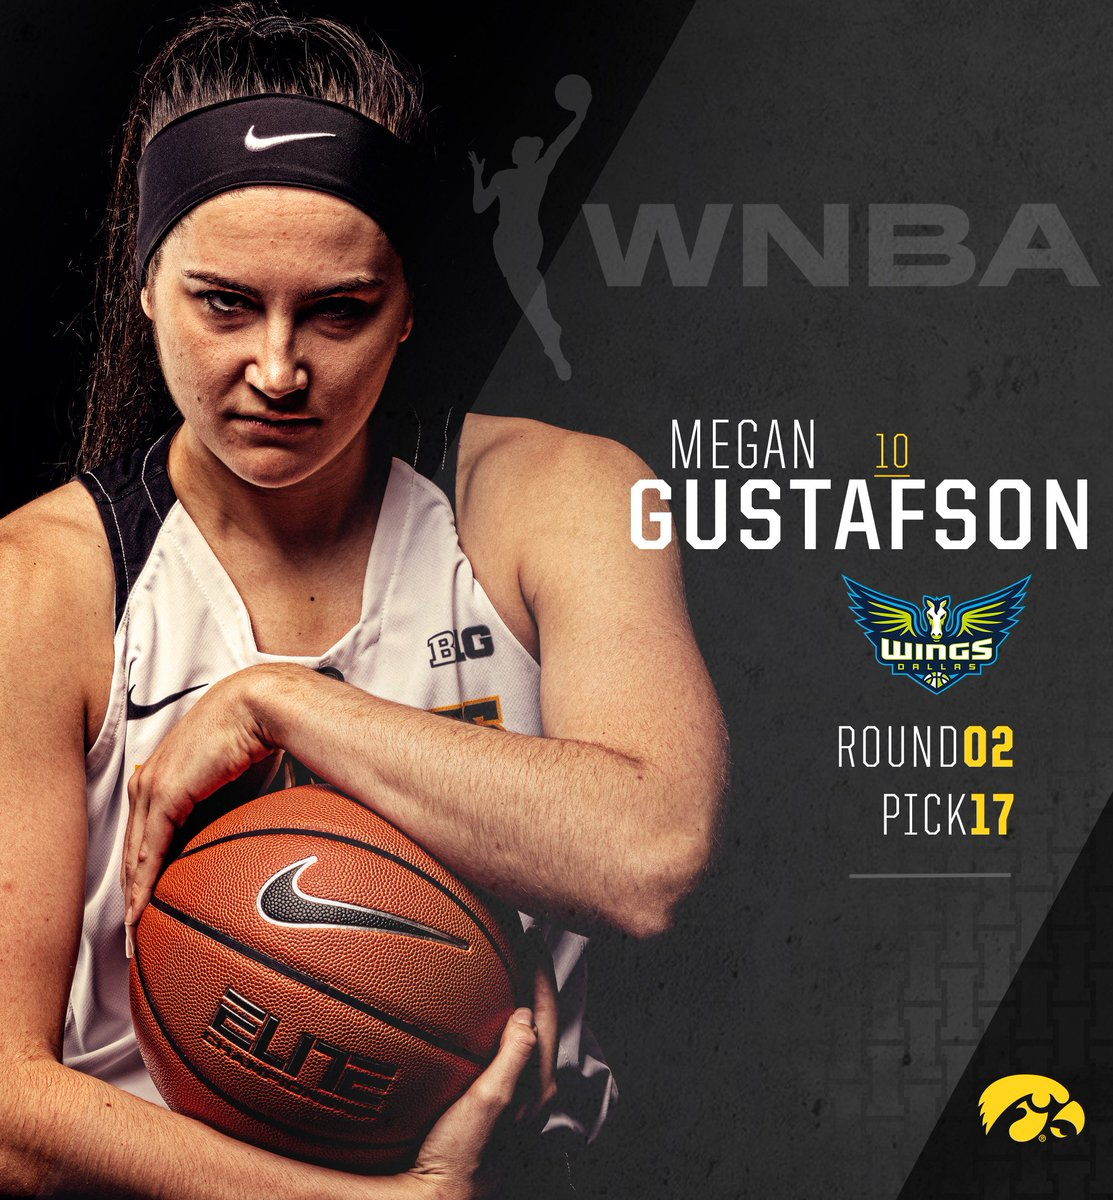 With the 17th overall pick in the @WNBA Draft the @DallasWings select @GustafsonMeg10!! #Hawkeyes #FightForIowa